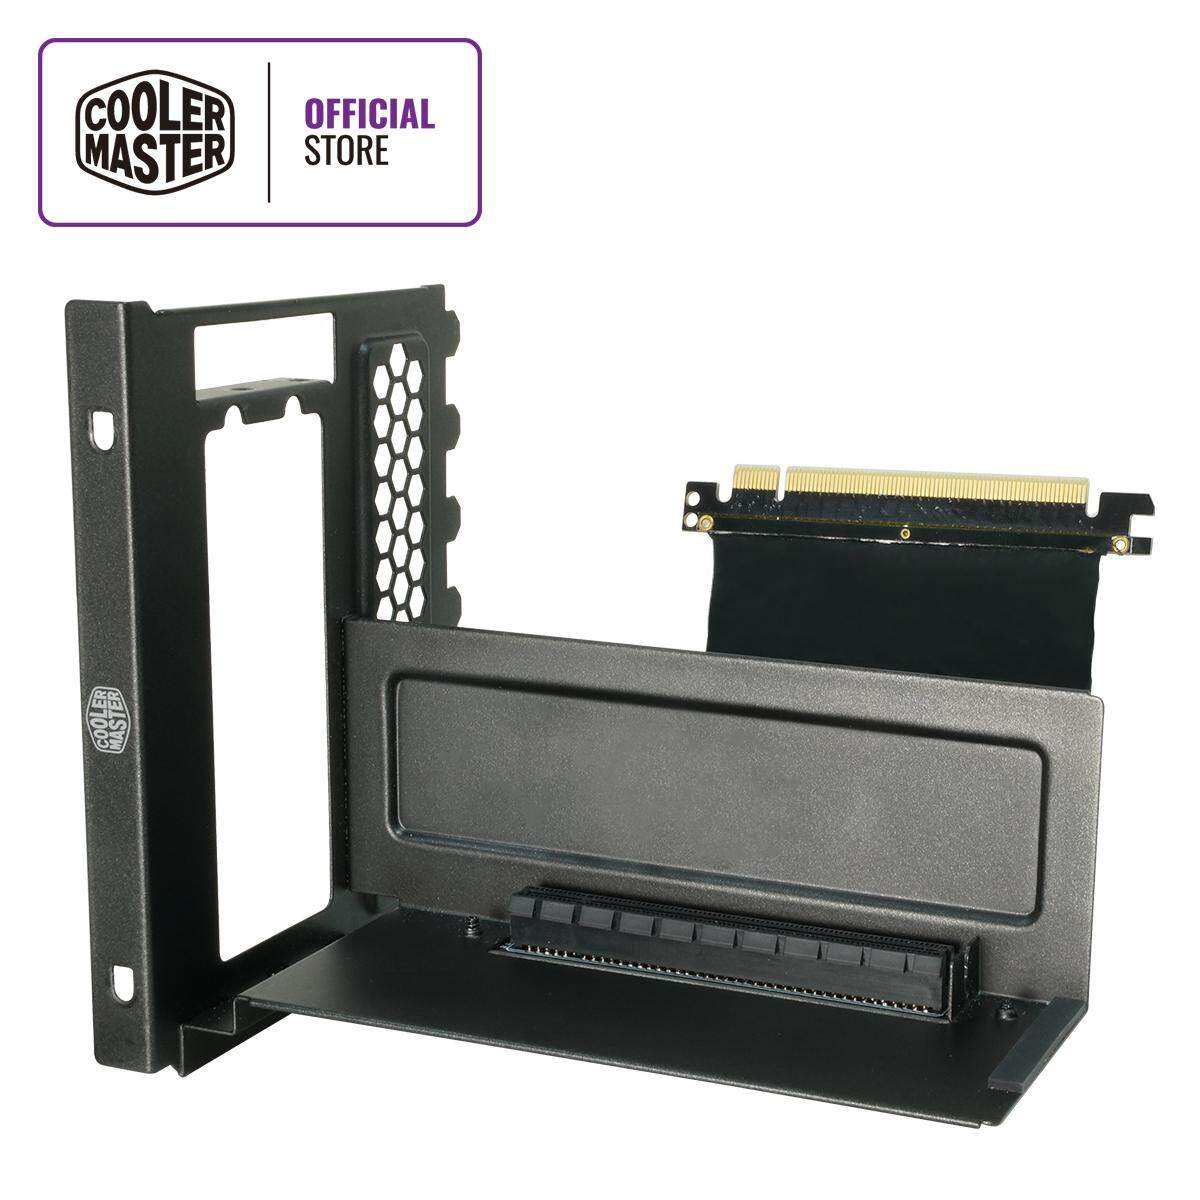 Cooler Master Vertical Graphics Card Holder Kit with PCI-E 3 0 x16 Riser  Cable